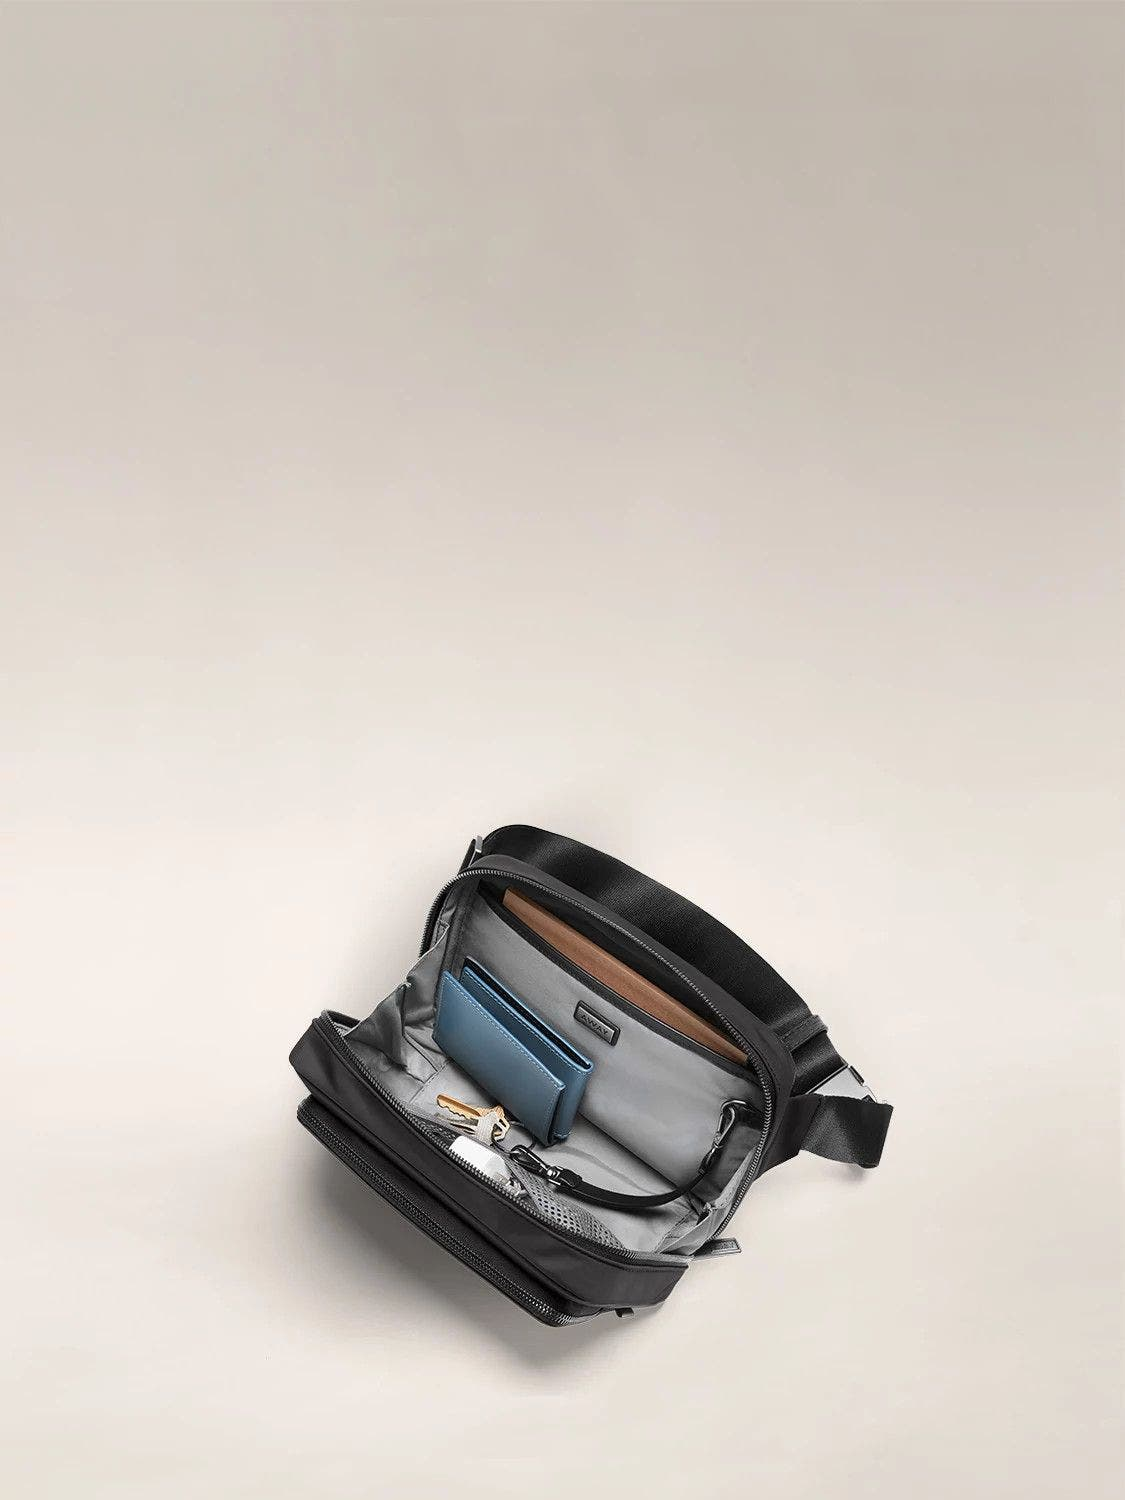 Interior view of the Away daily crossbody bag in the color black.